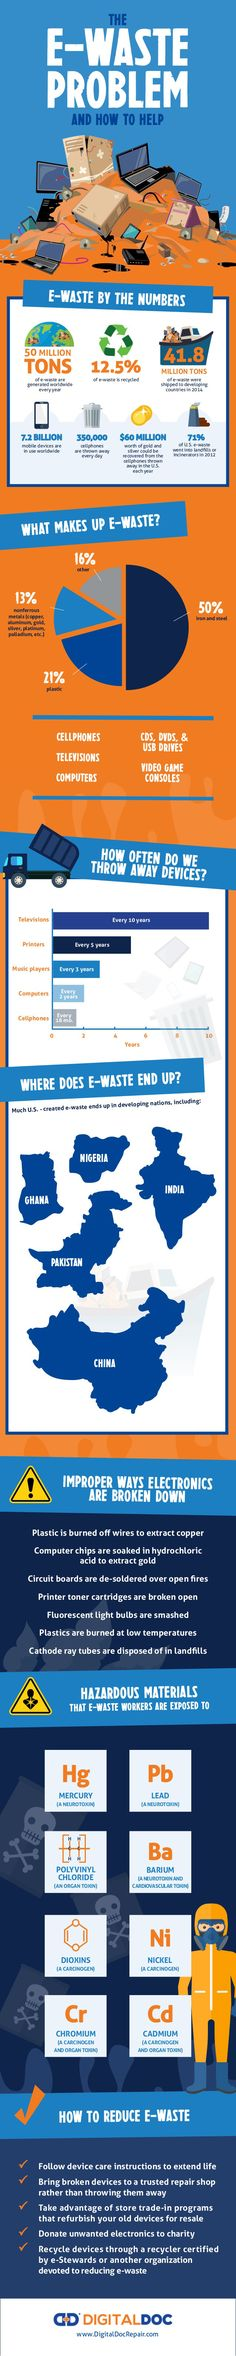 infographic, ewaste, digital doc, green graphics, recycling electronics, electronic waste, electronic disposal